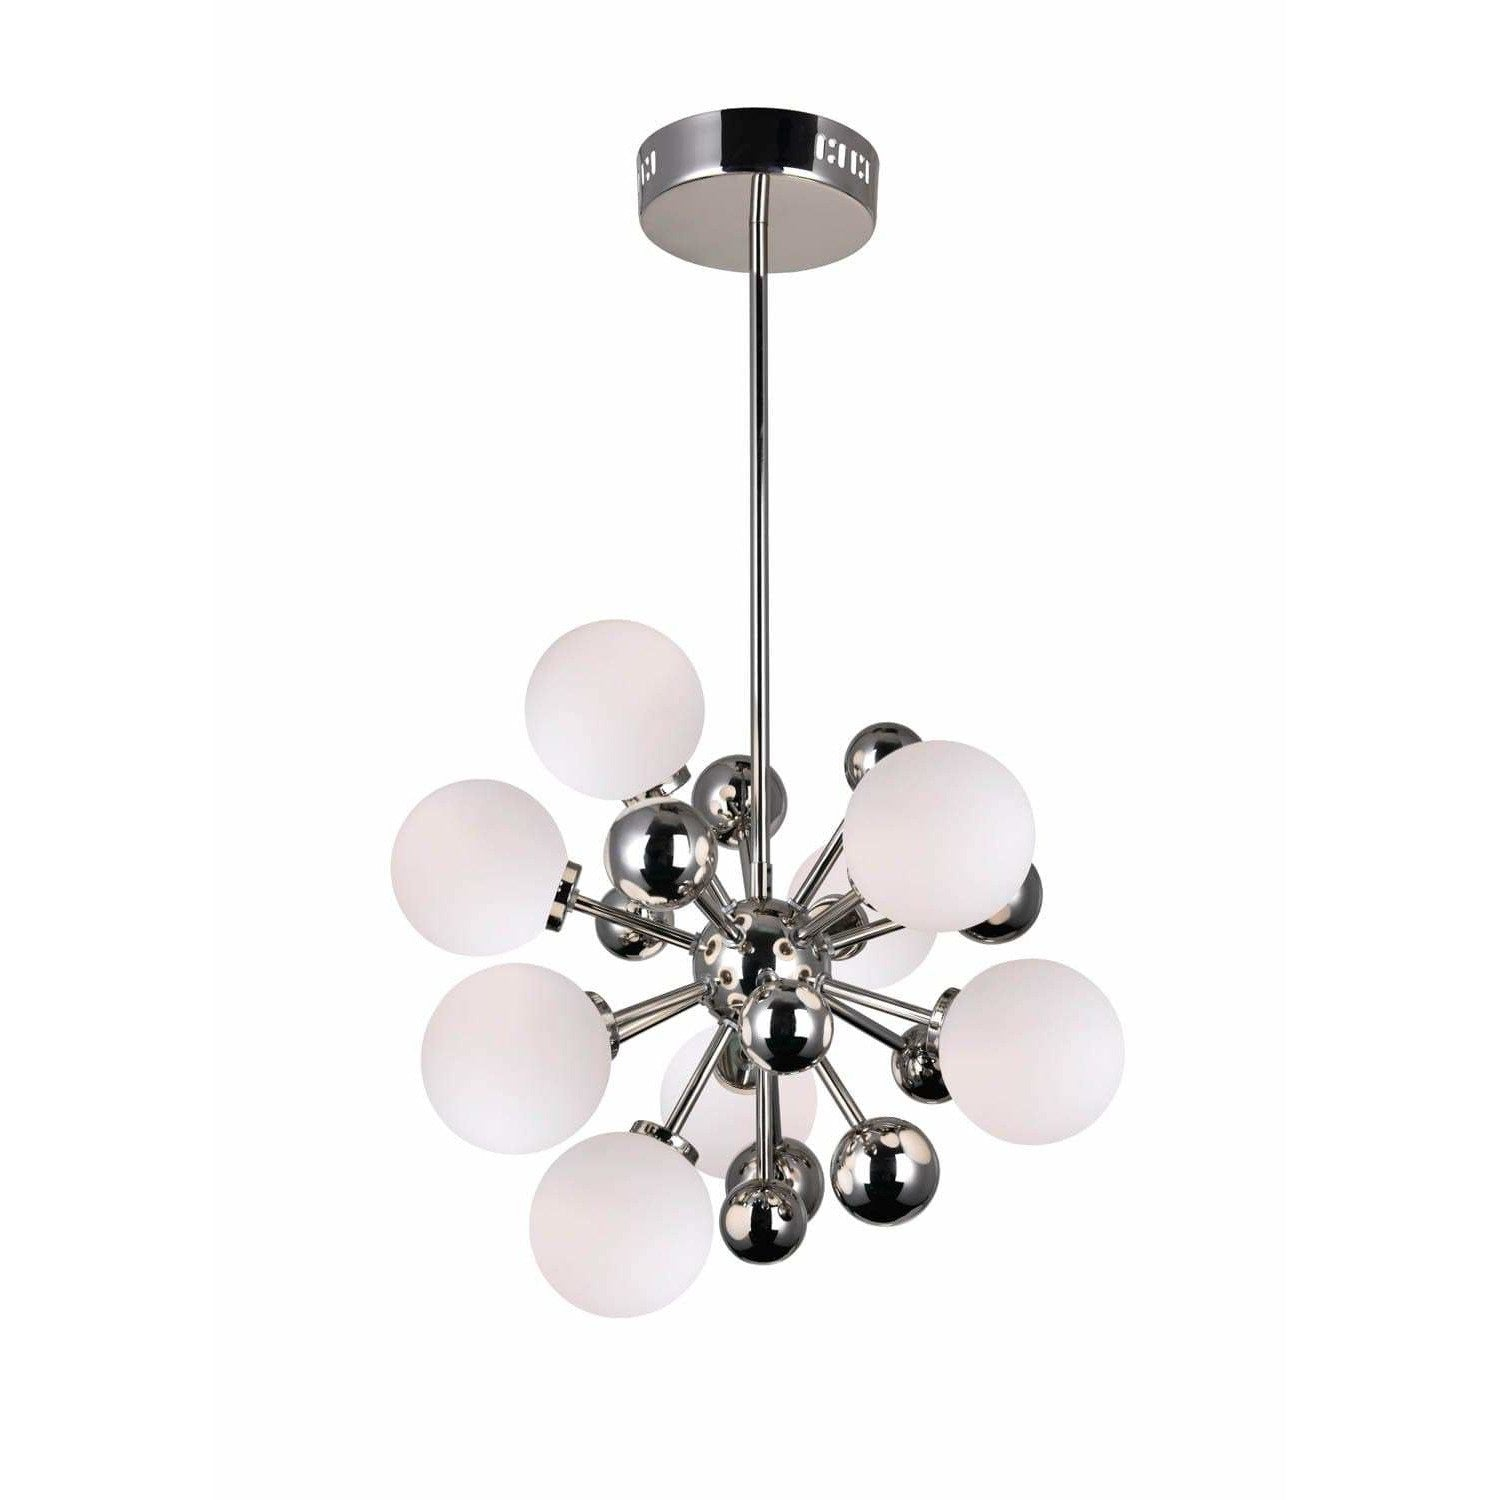 CWI Lighting Chandeliers Polished Nickel Element 8 Light Chandelier with Polished Nickel Finish by CWI Lighting 1125P16-8-613